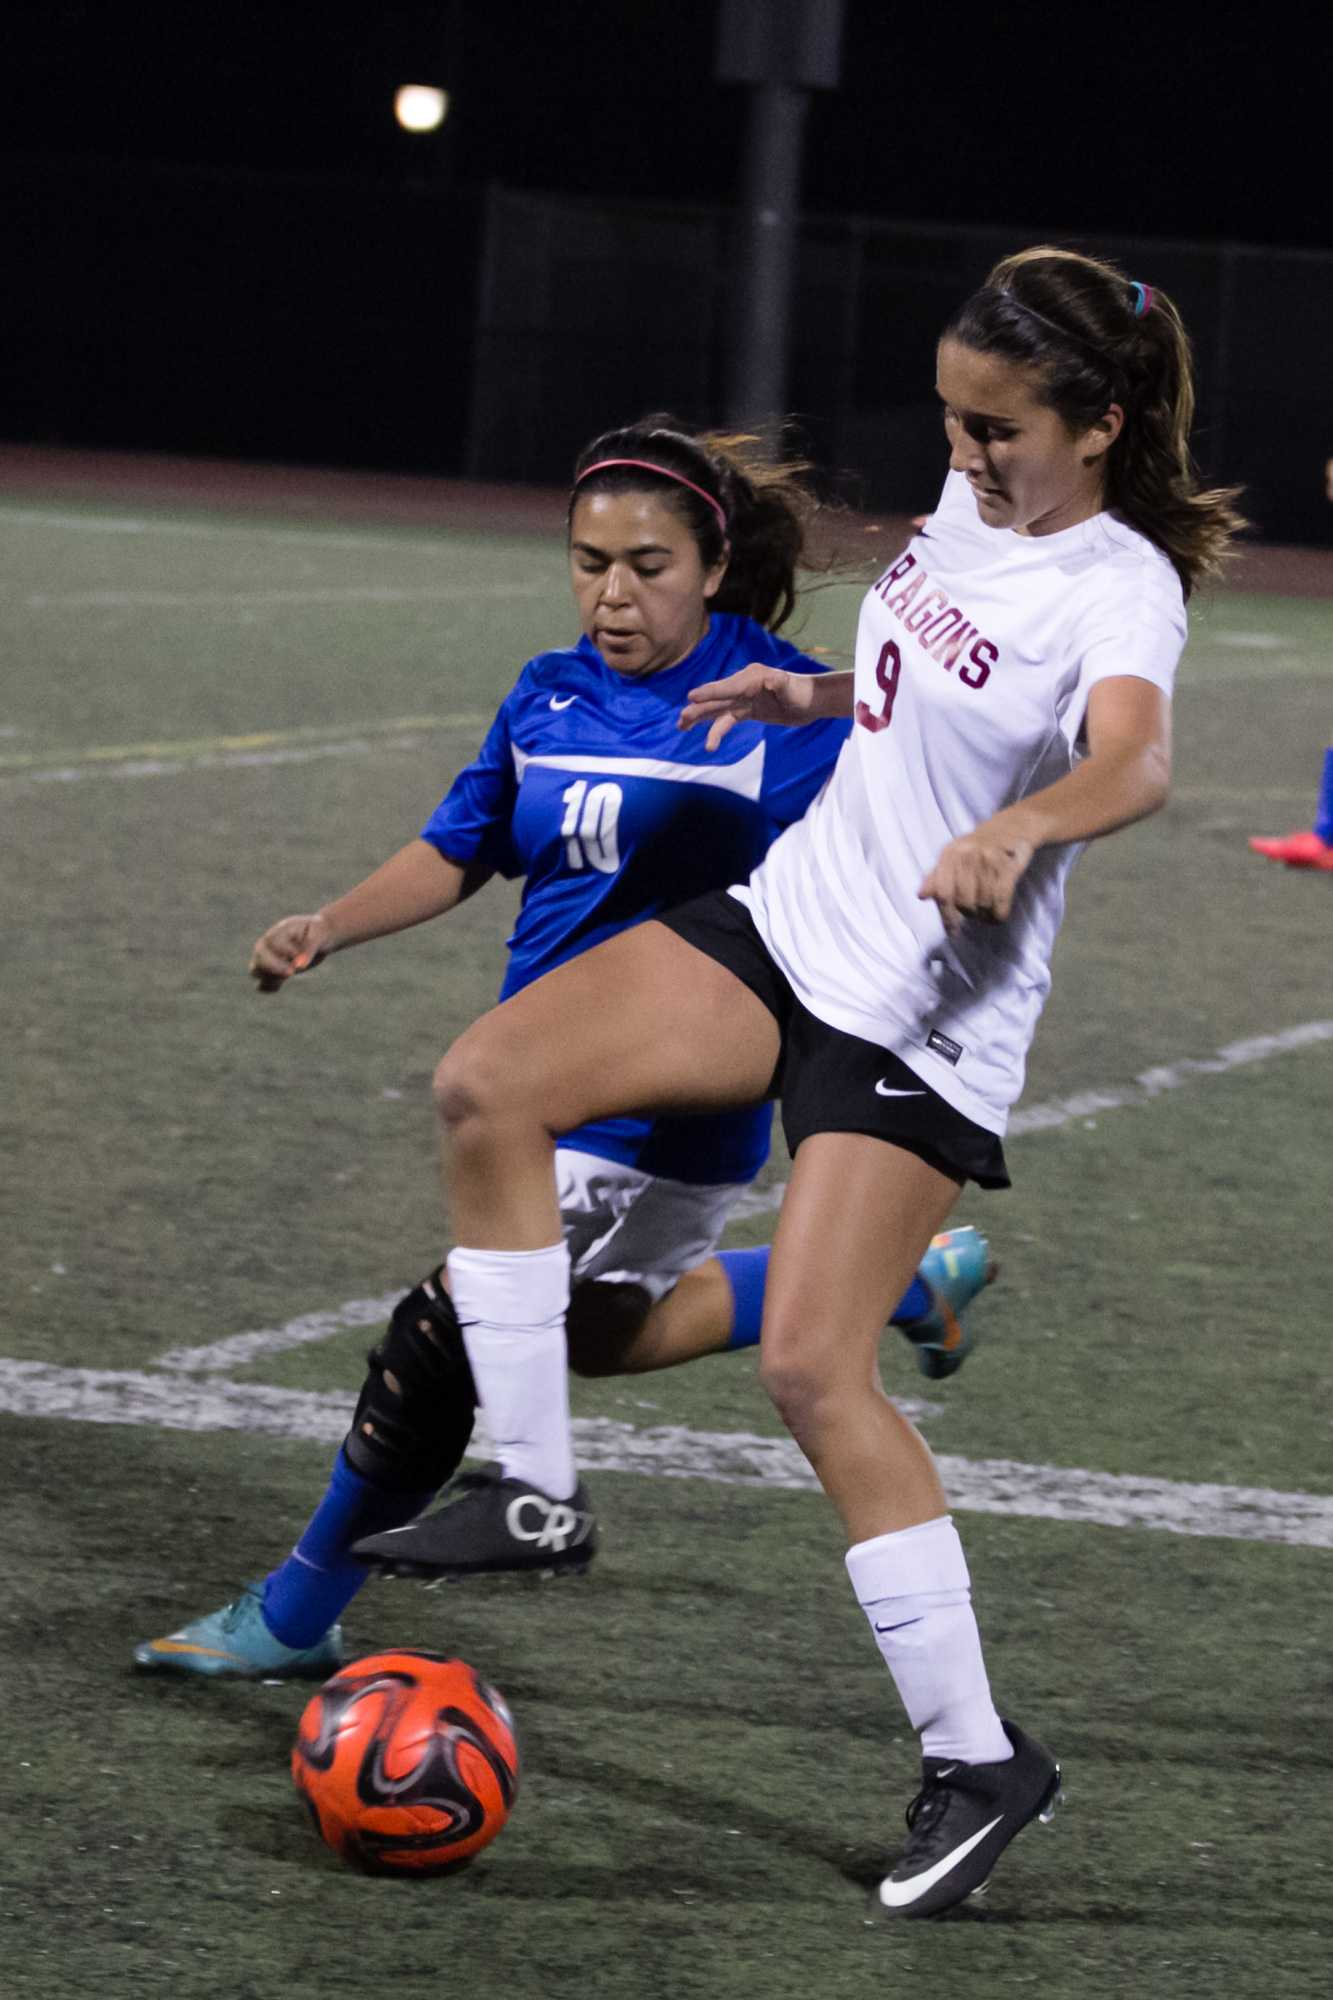 Freshman Olivia Morales fights over the ball. Credit: Josh Ren/The Foothill Dragon Press